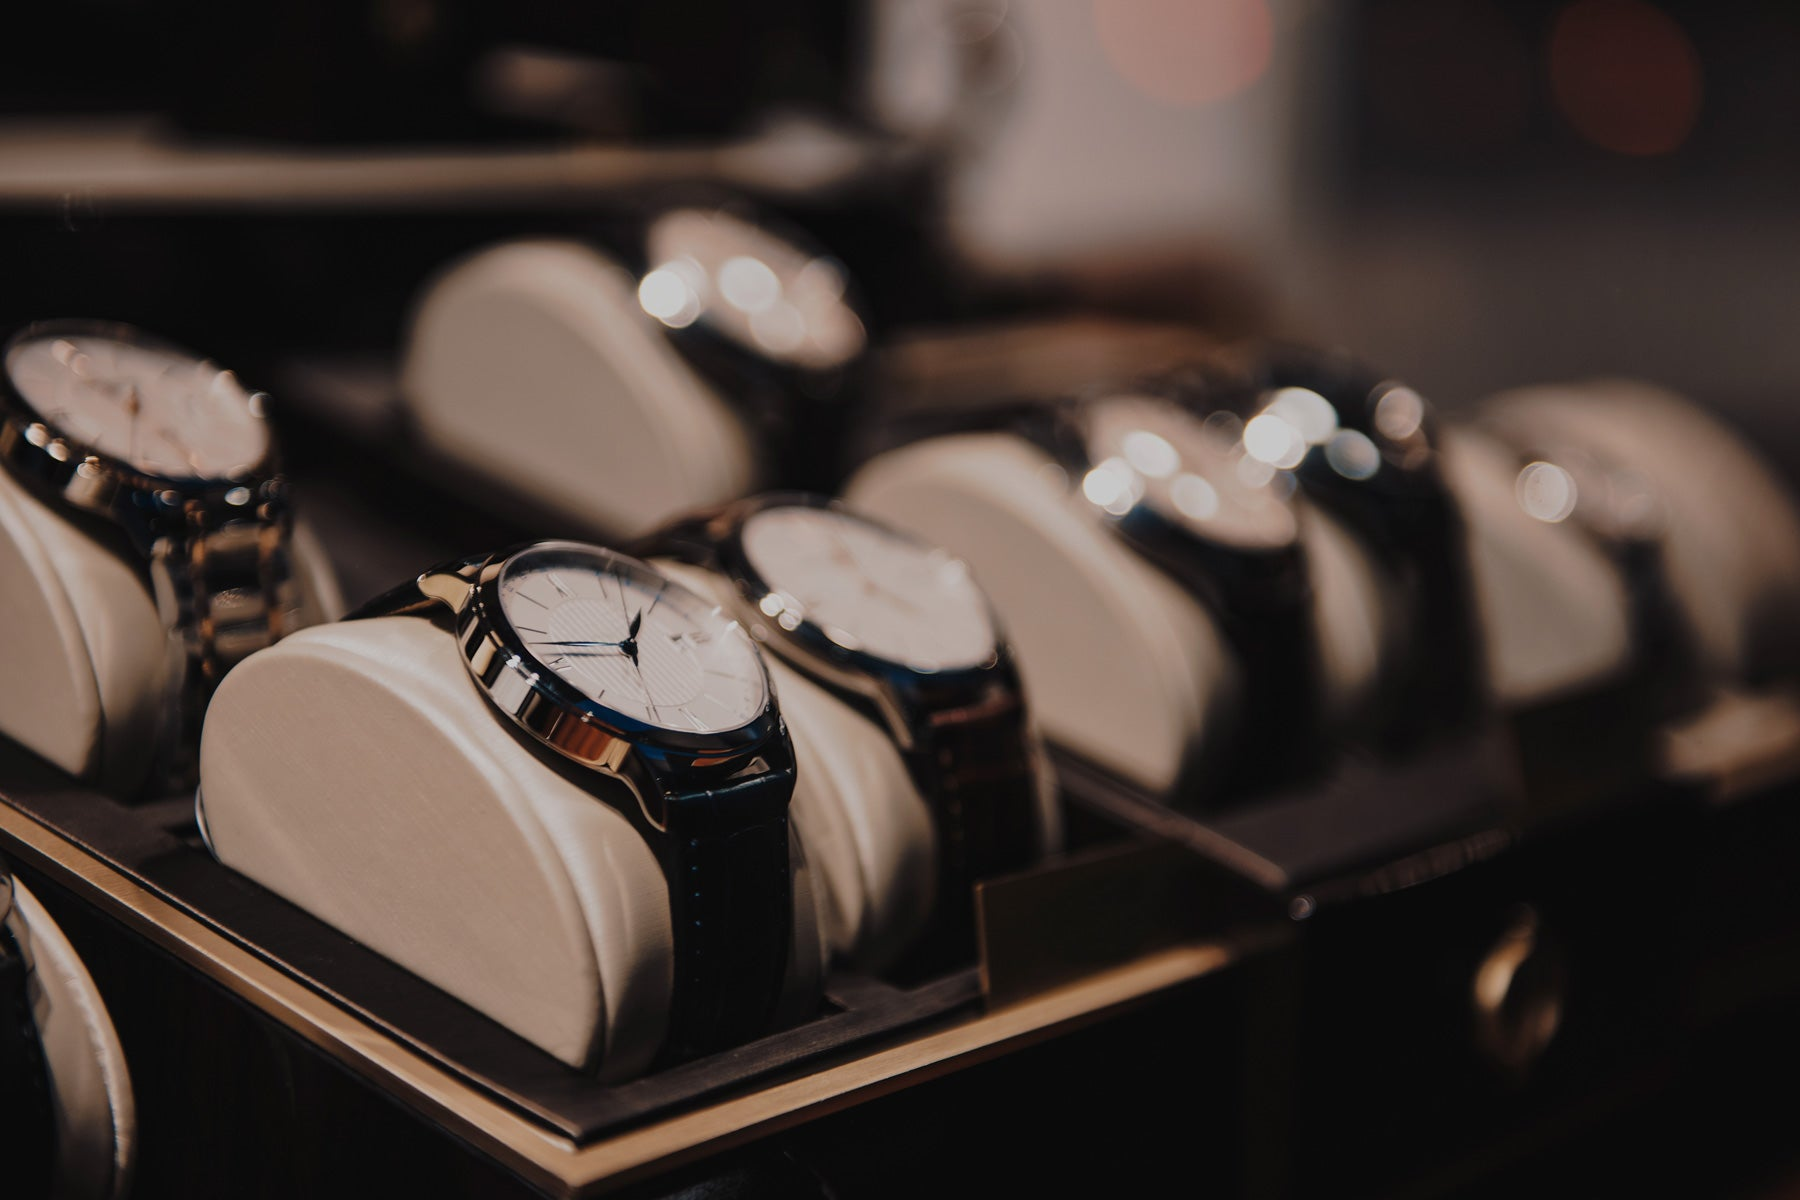 Mountroyal Watches by The Black Bow Jewelry Company